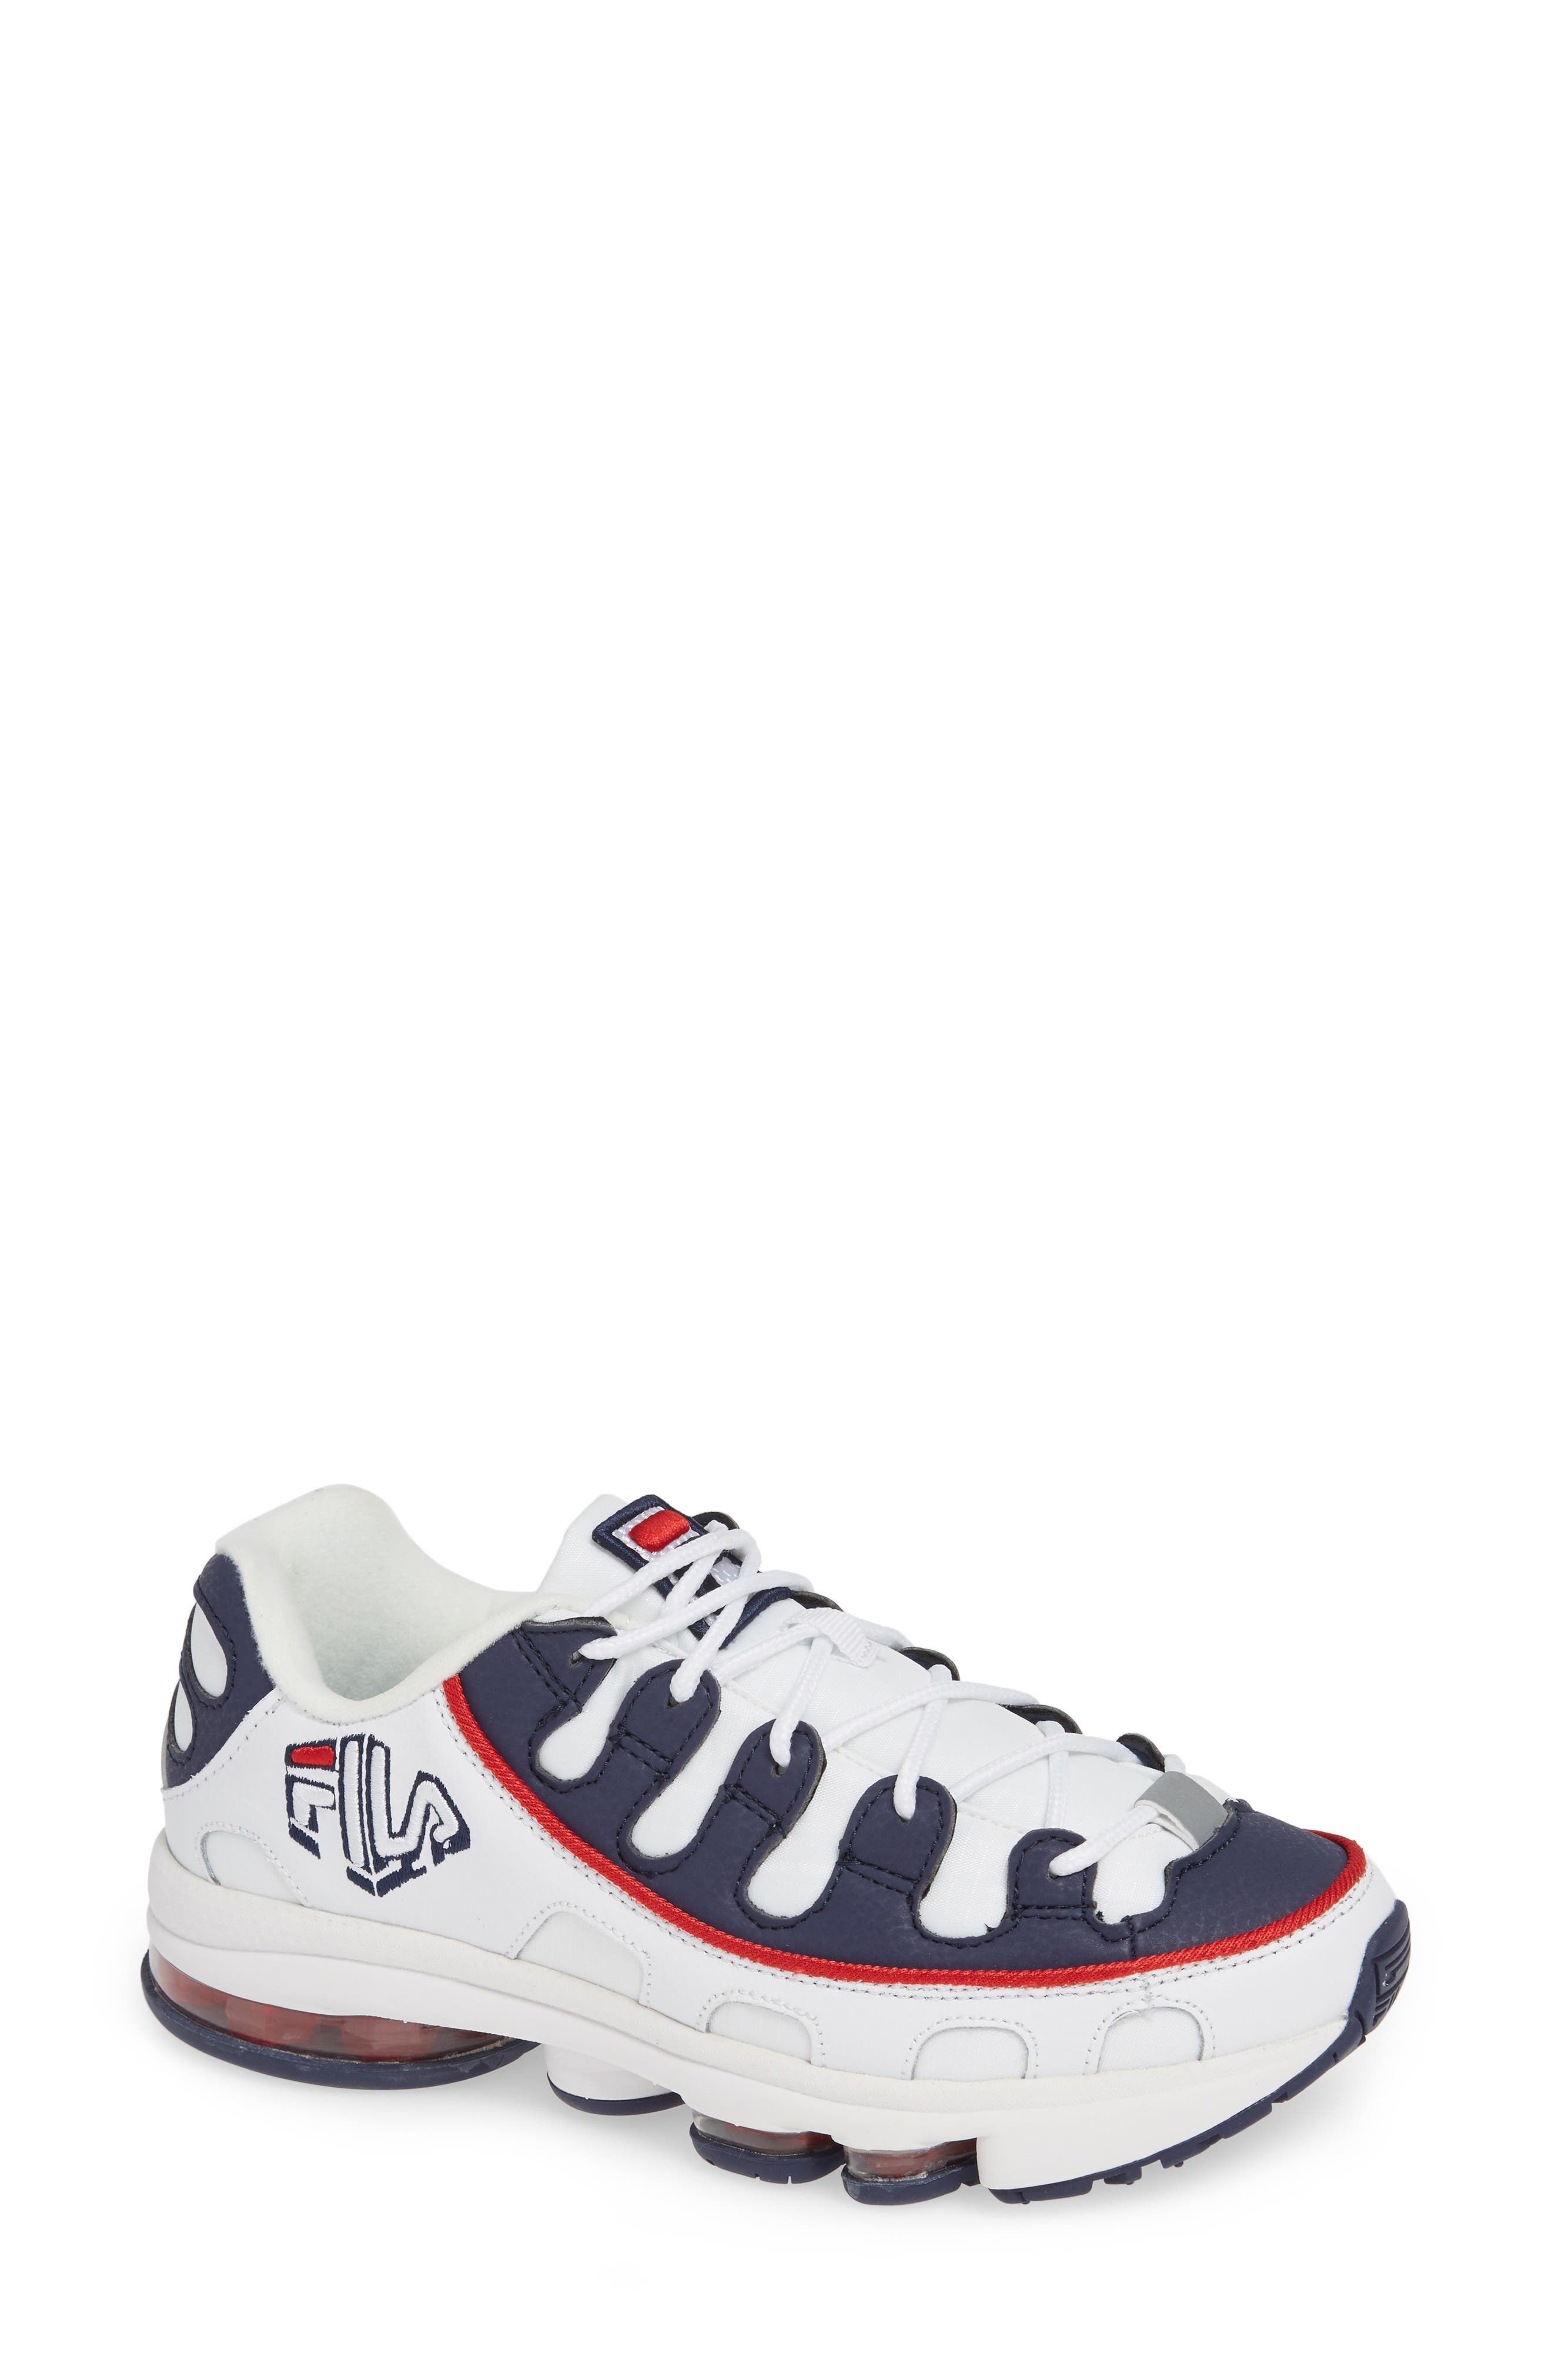 Silva Trainer Sneaker, Main, color, WHITE/ NAVY/ RED